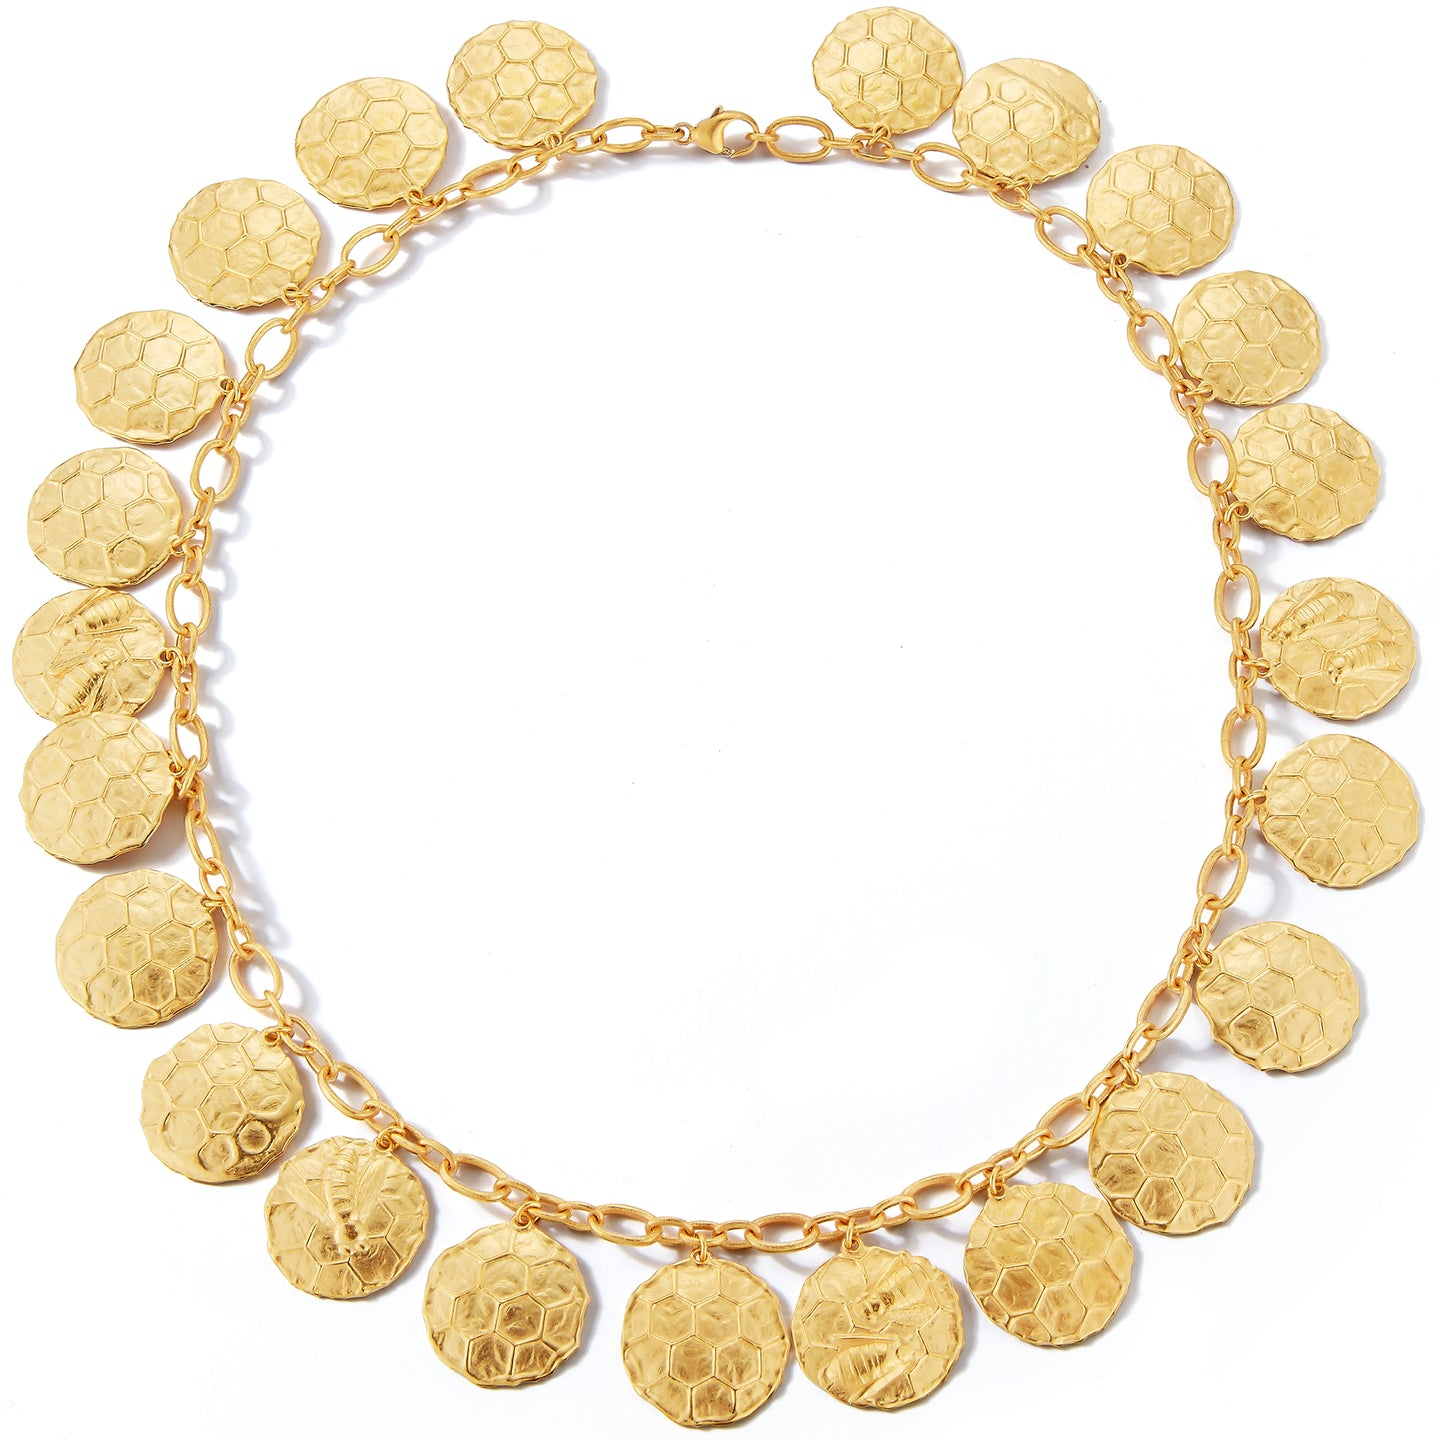 33521 Single Row Honey Bee Swarm Necklace